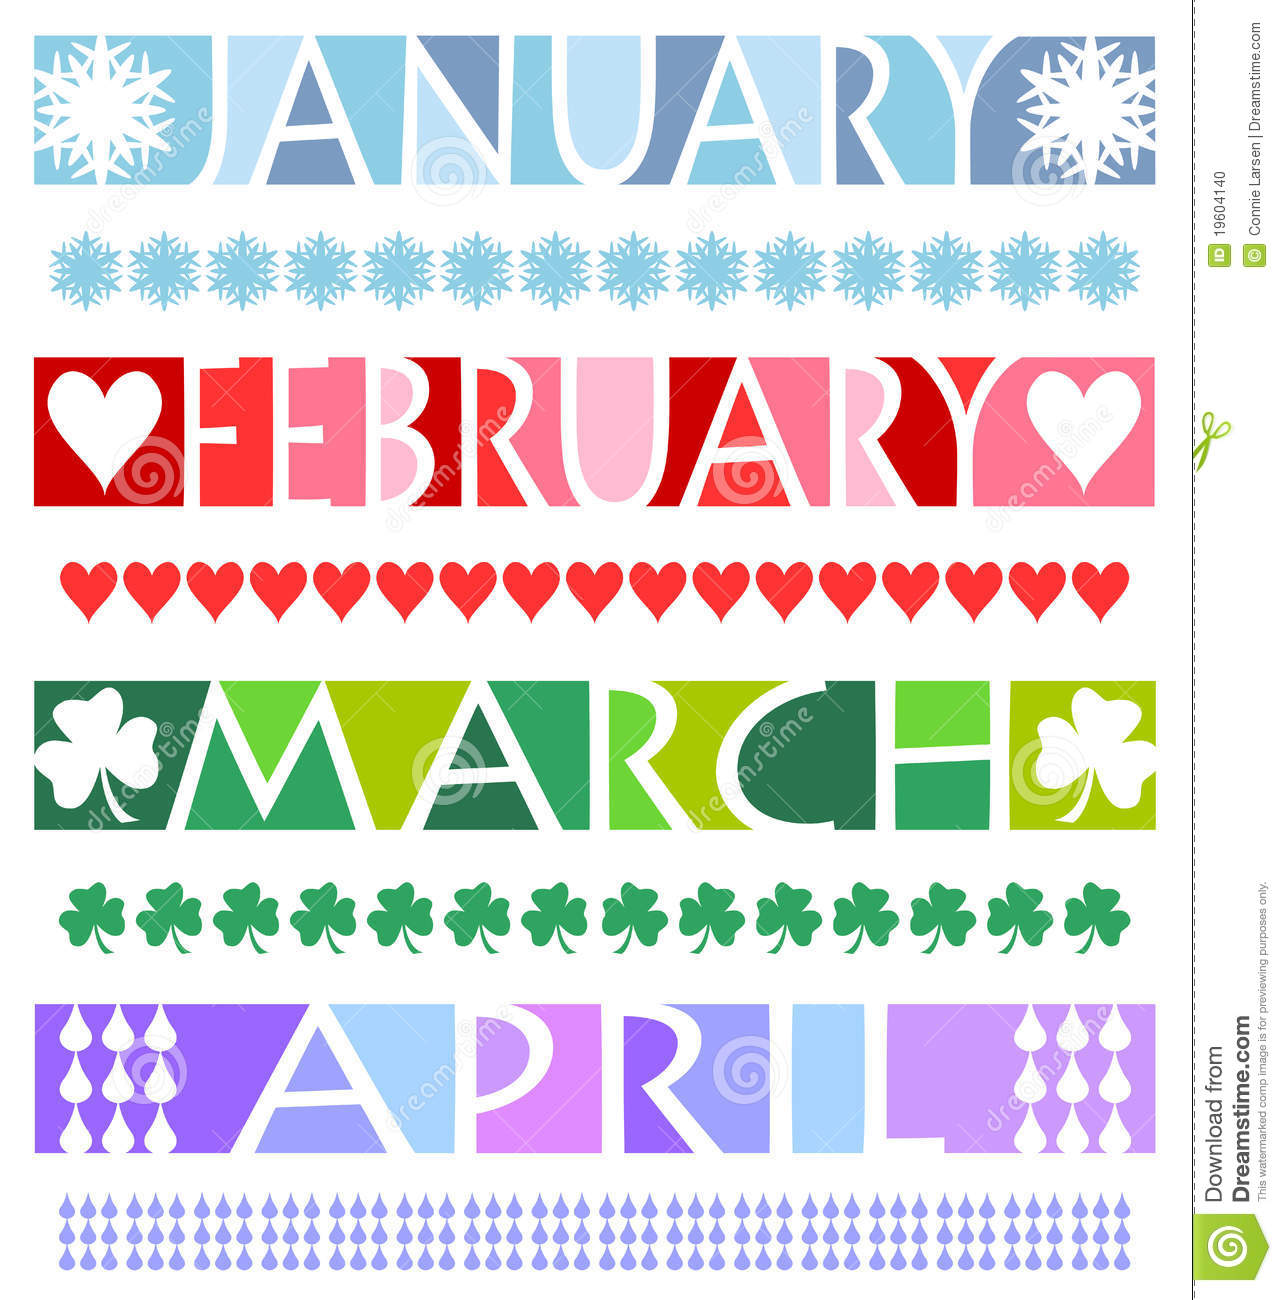 Calendar Clip Art Border : Month banners and borders eps stock vector illustration